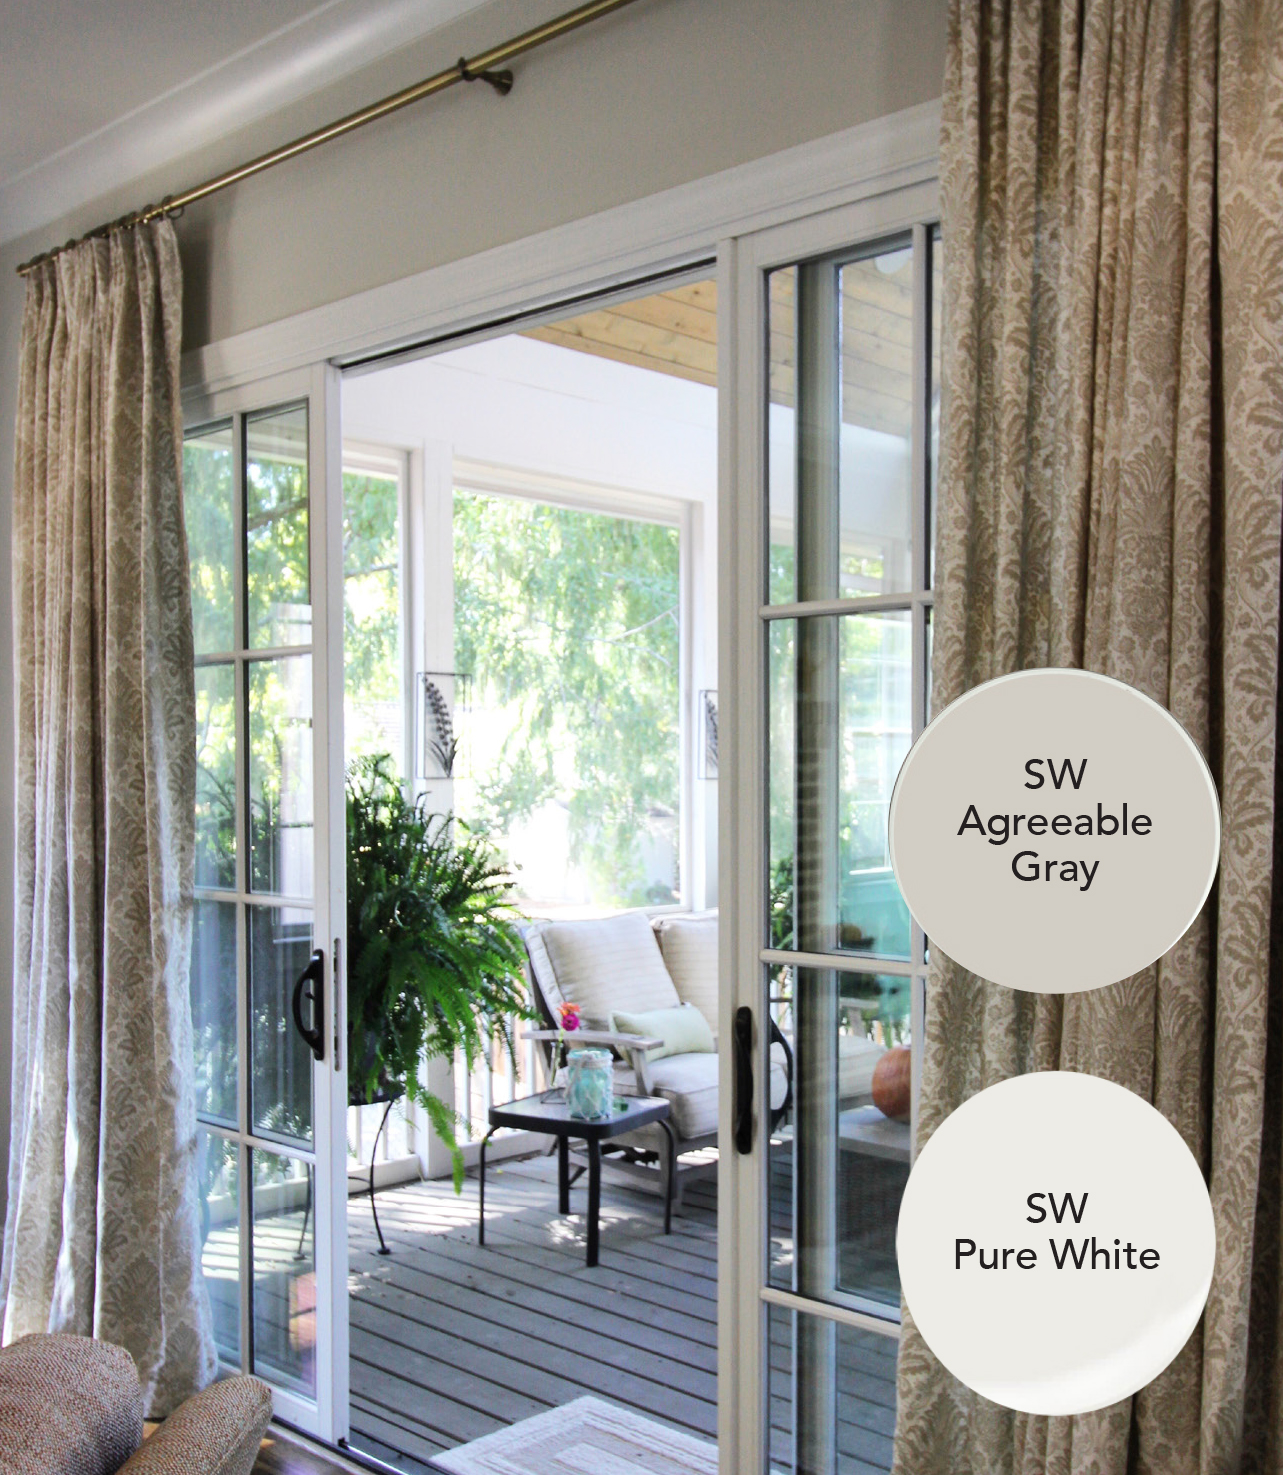 Sherwin Williams Agreeable Gray and Pure White